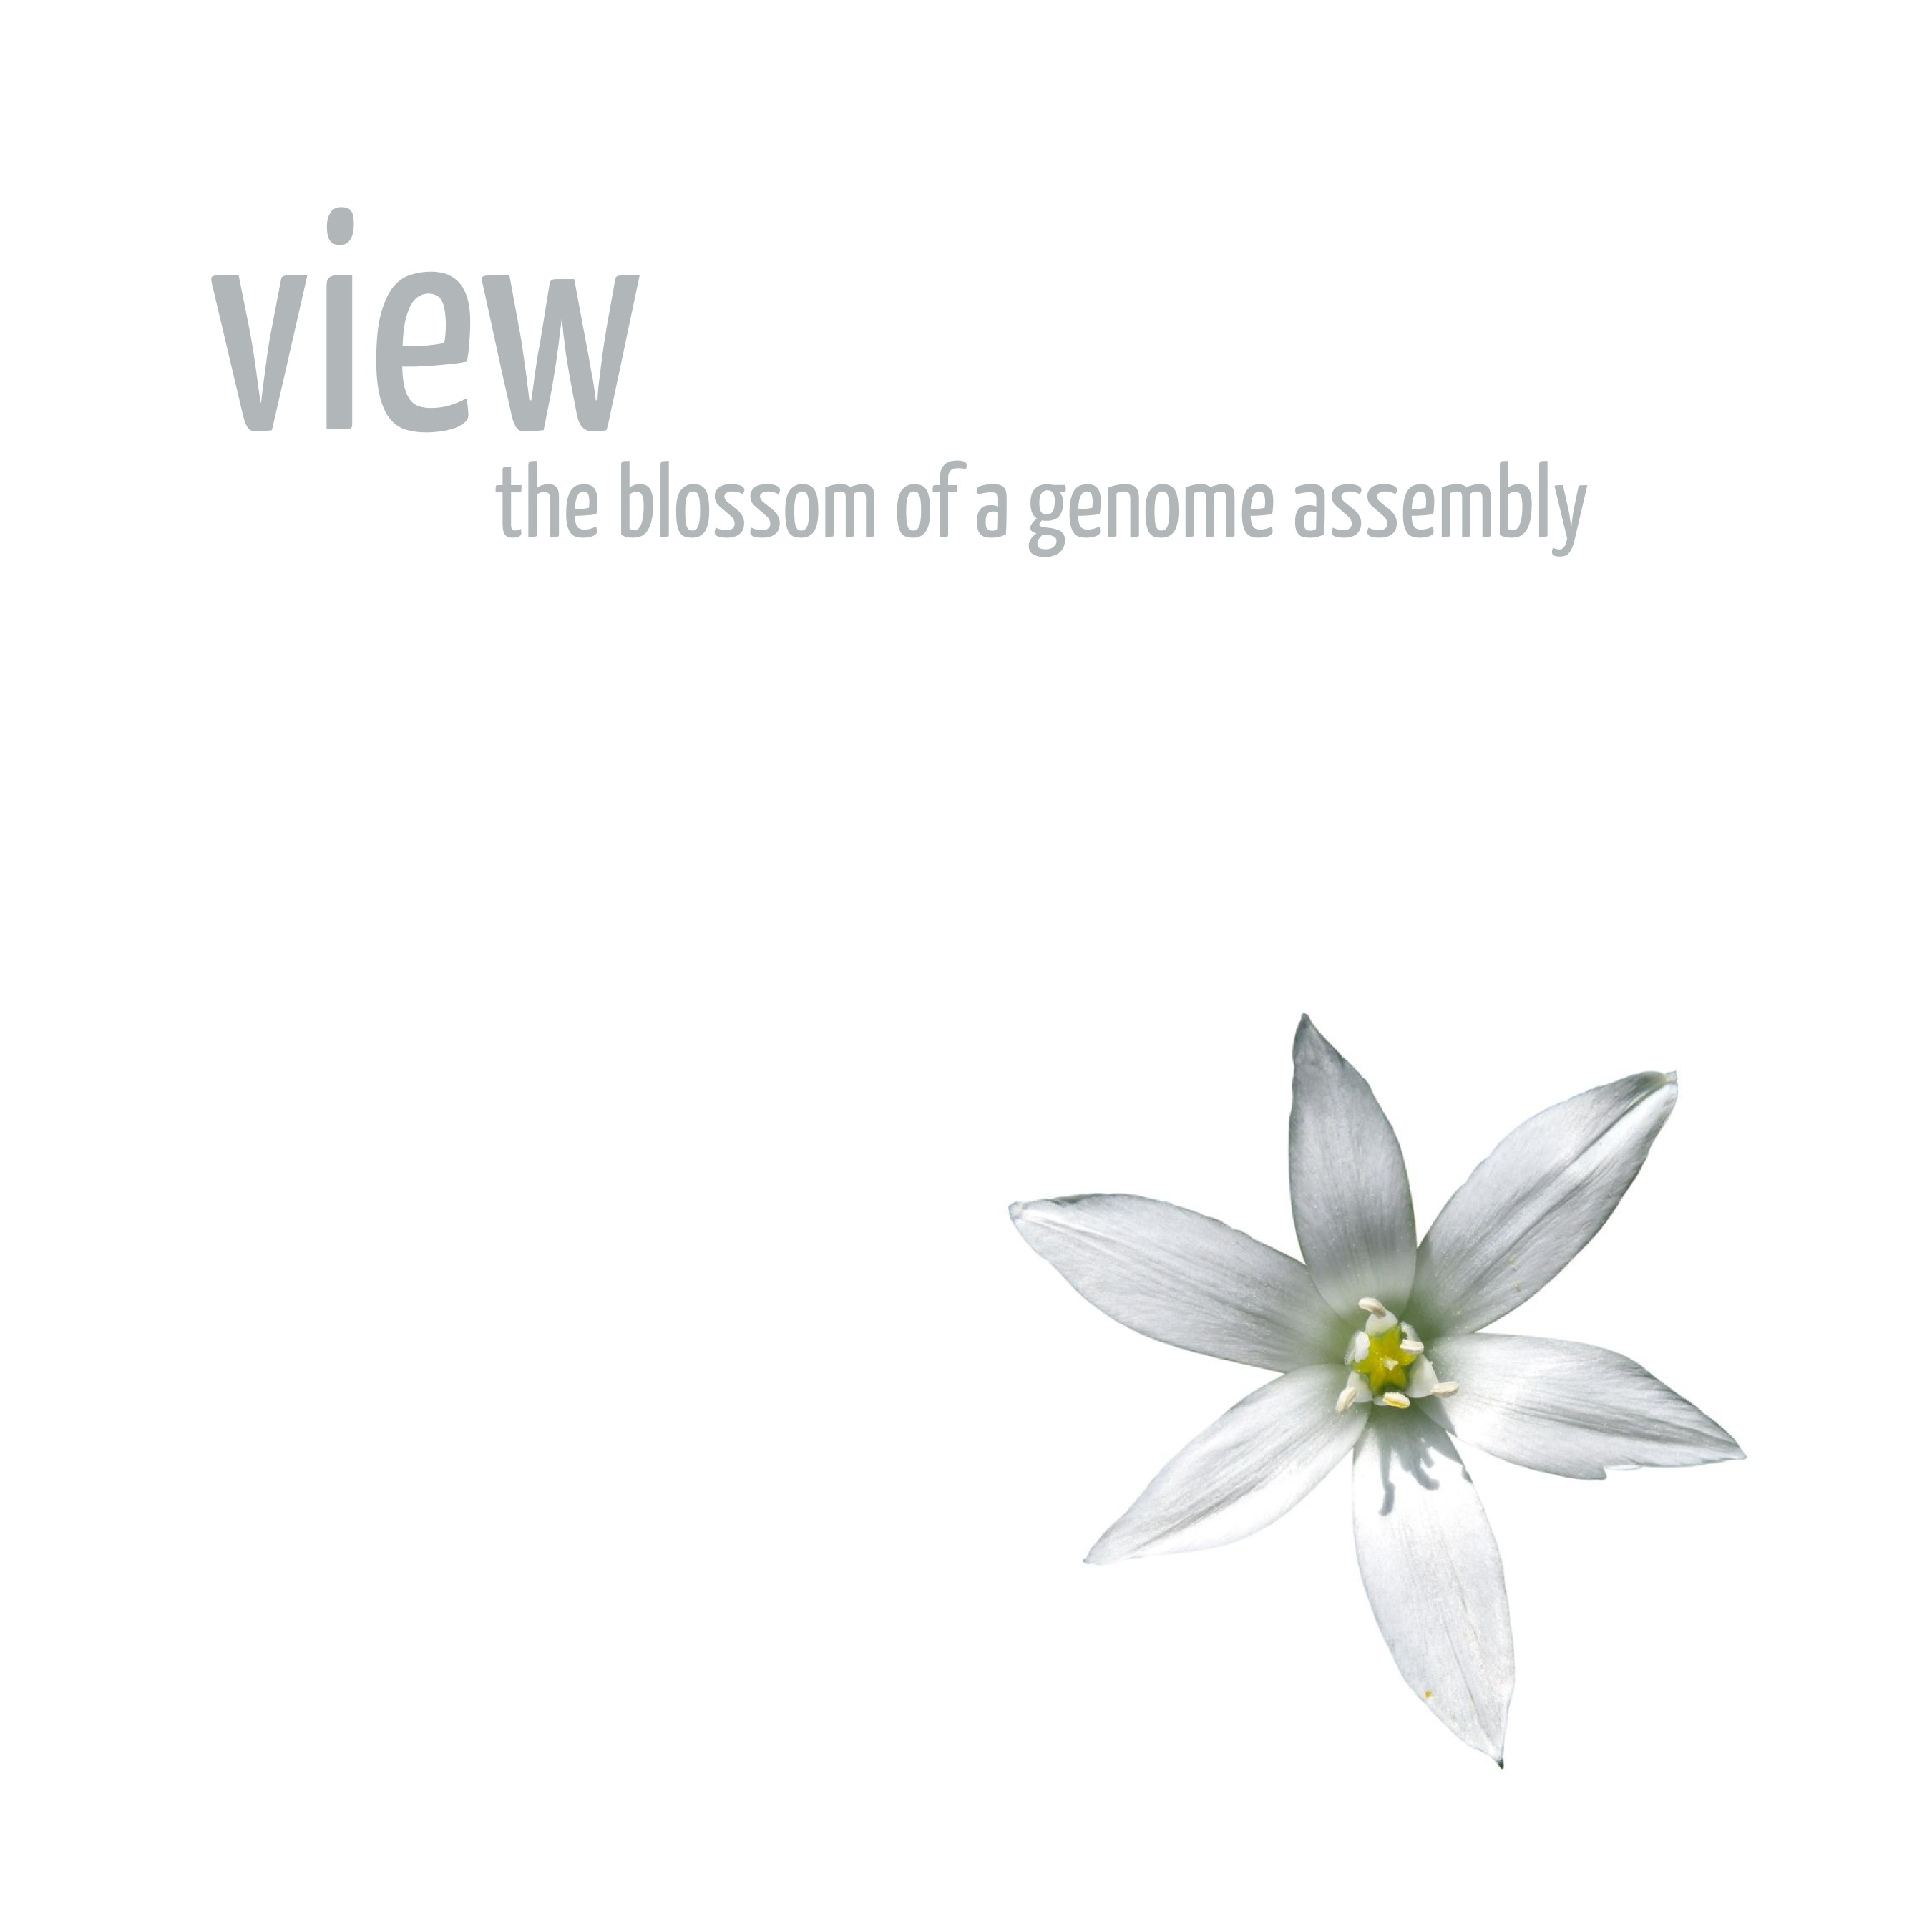 View: the blossom of a genome assembly